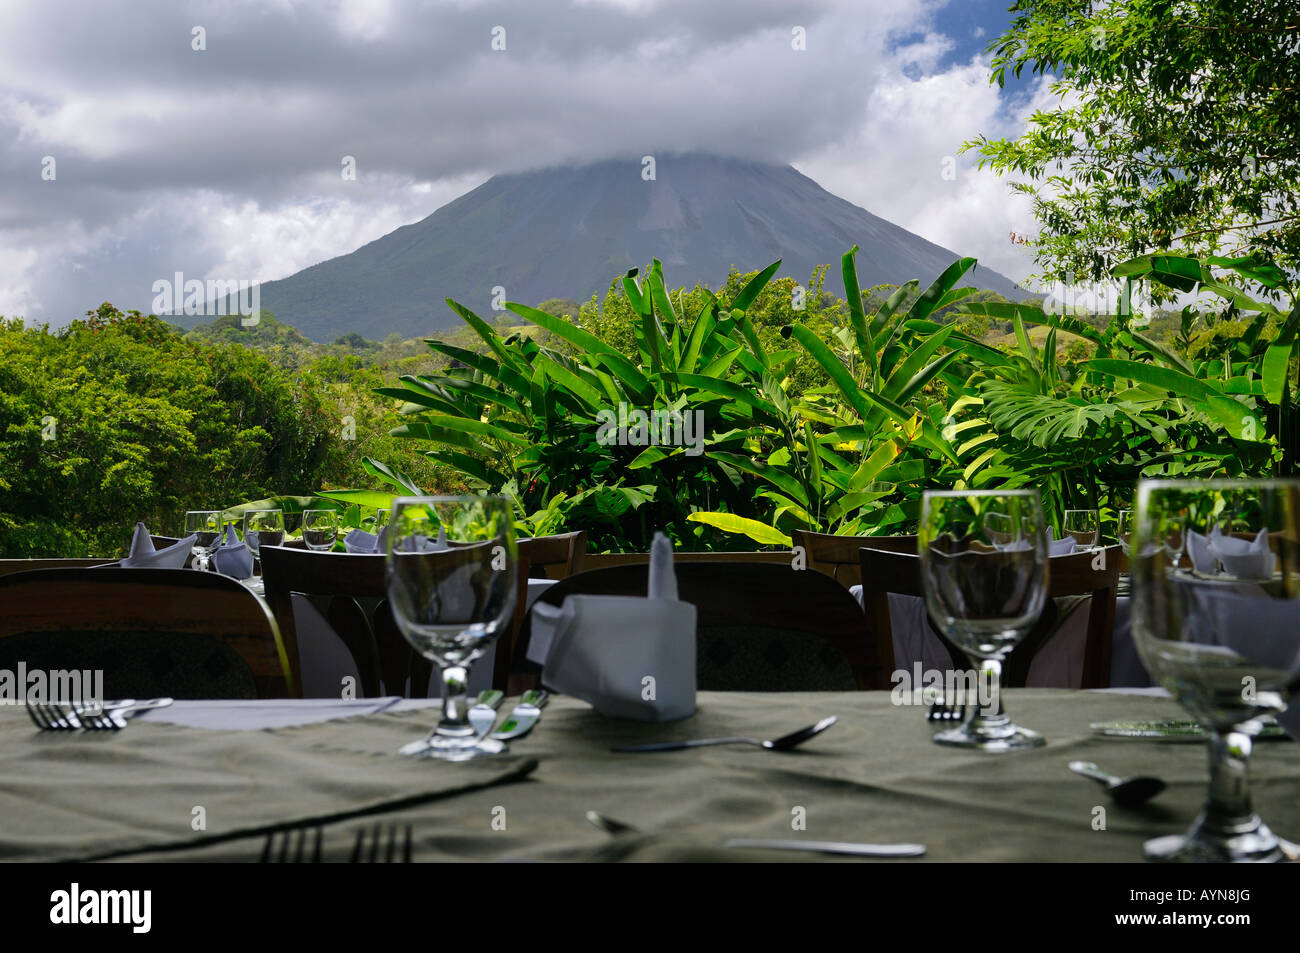 View of Arenal Volcano from the Paraiso Resort restaurant tables - Stock Image